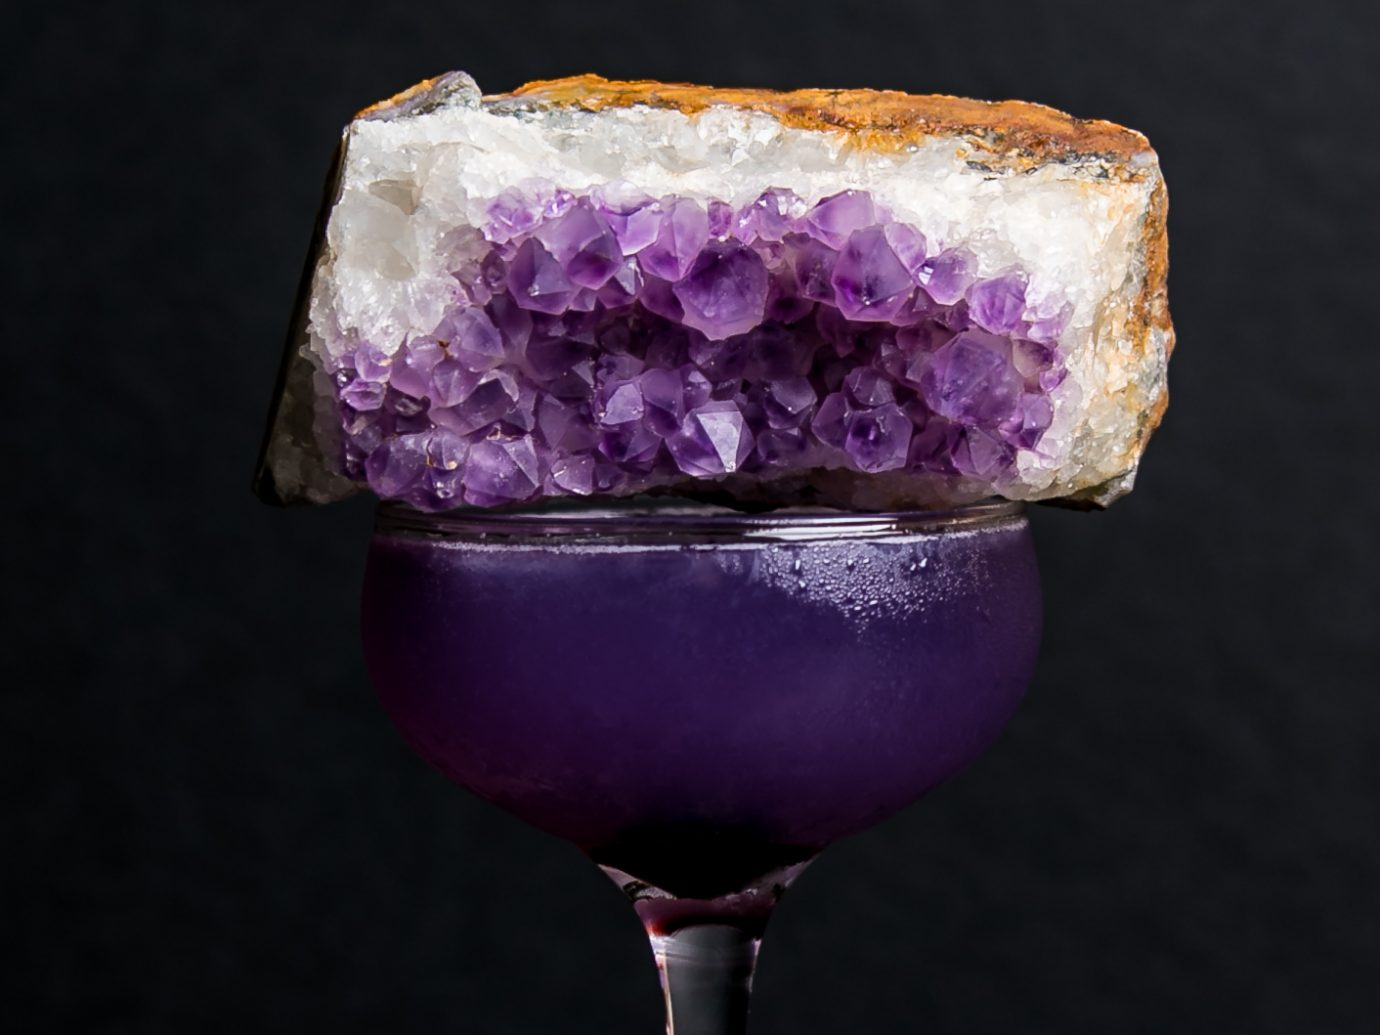 A purple Sundry + Vice cocktail, a classic Aviation called the Amethyst. It's butterfly pea-infused gin, maraschino, Creme de Violette, and lemon